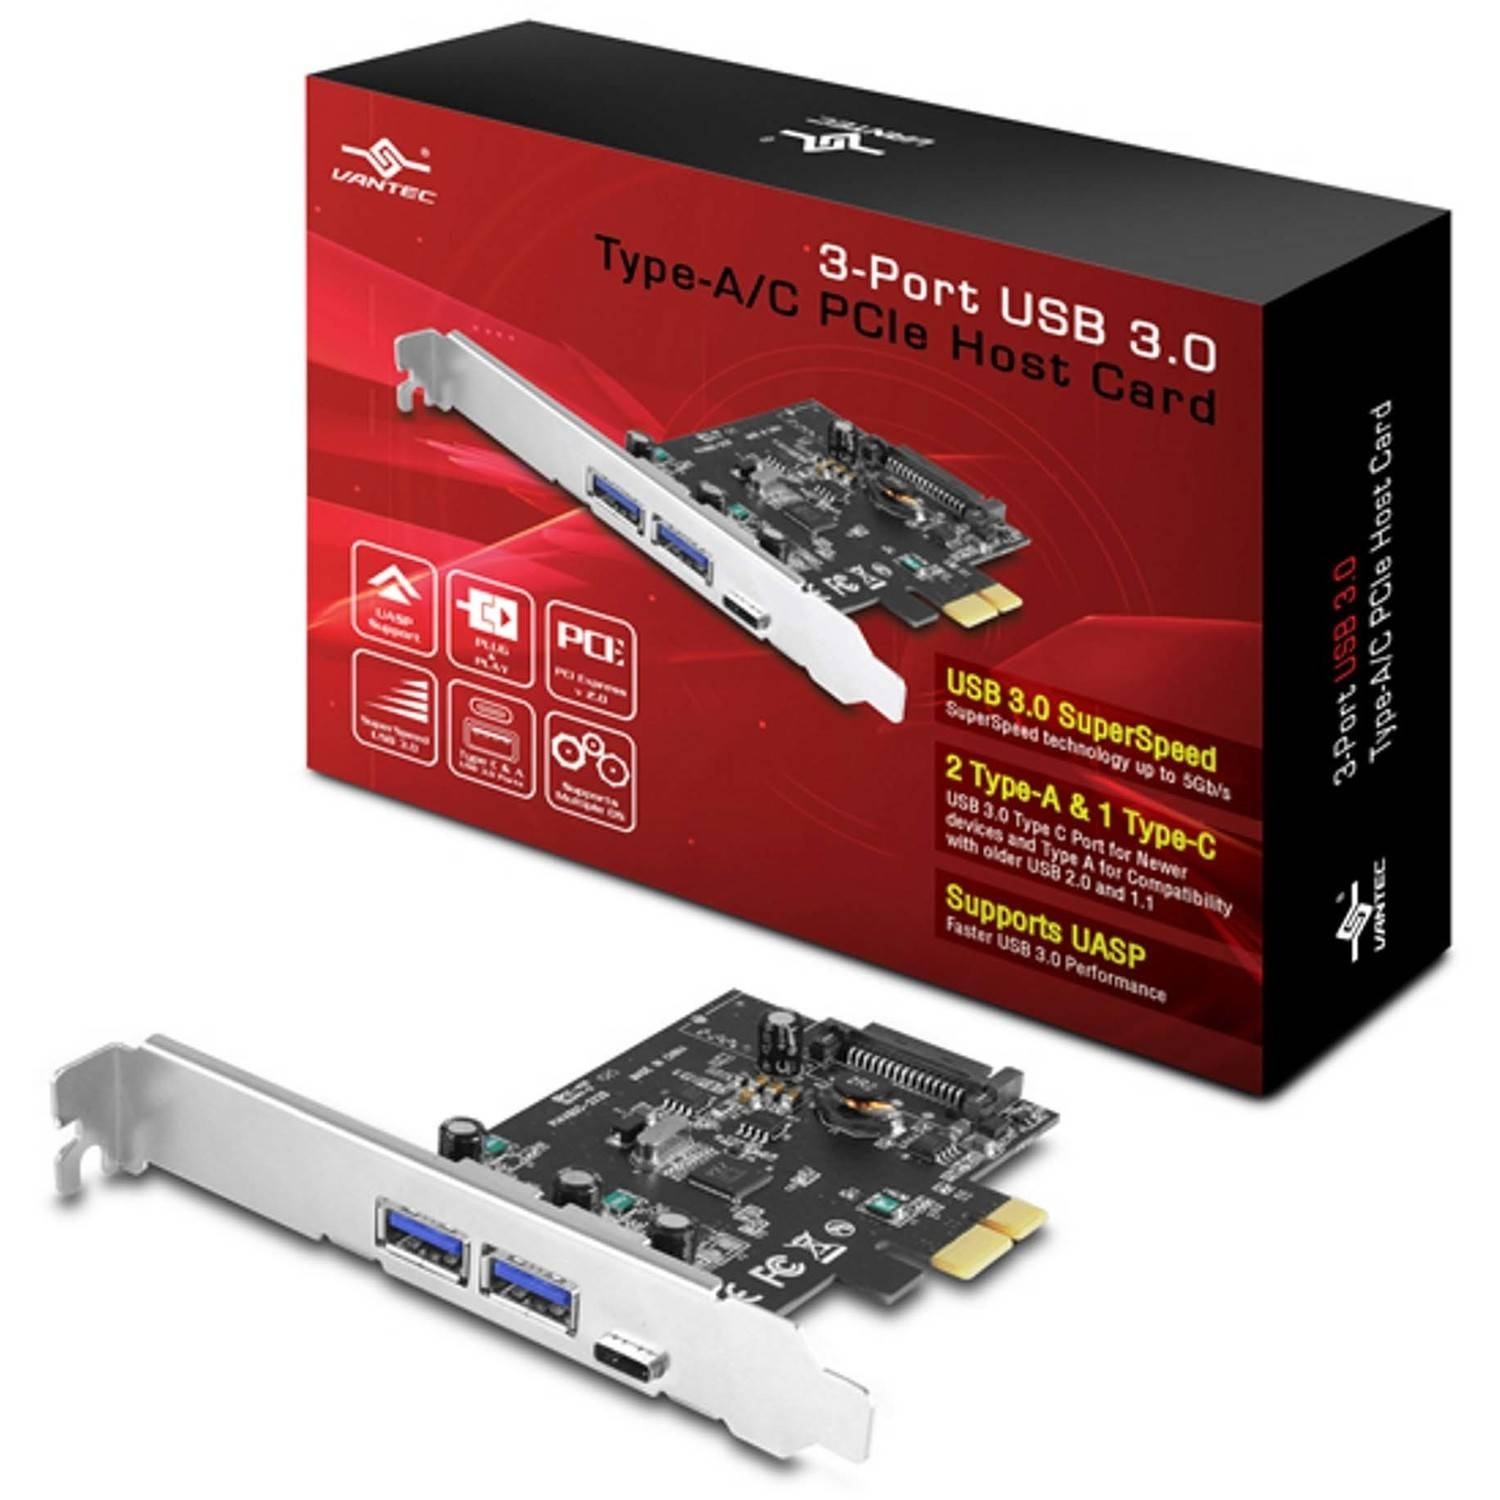 Vantec UGT-PC331AC 3-Port USB 3.0 Type A and C Port PCIe Host Card, Silver